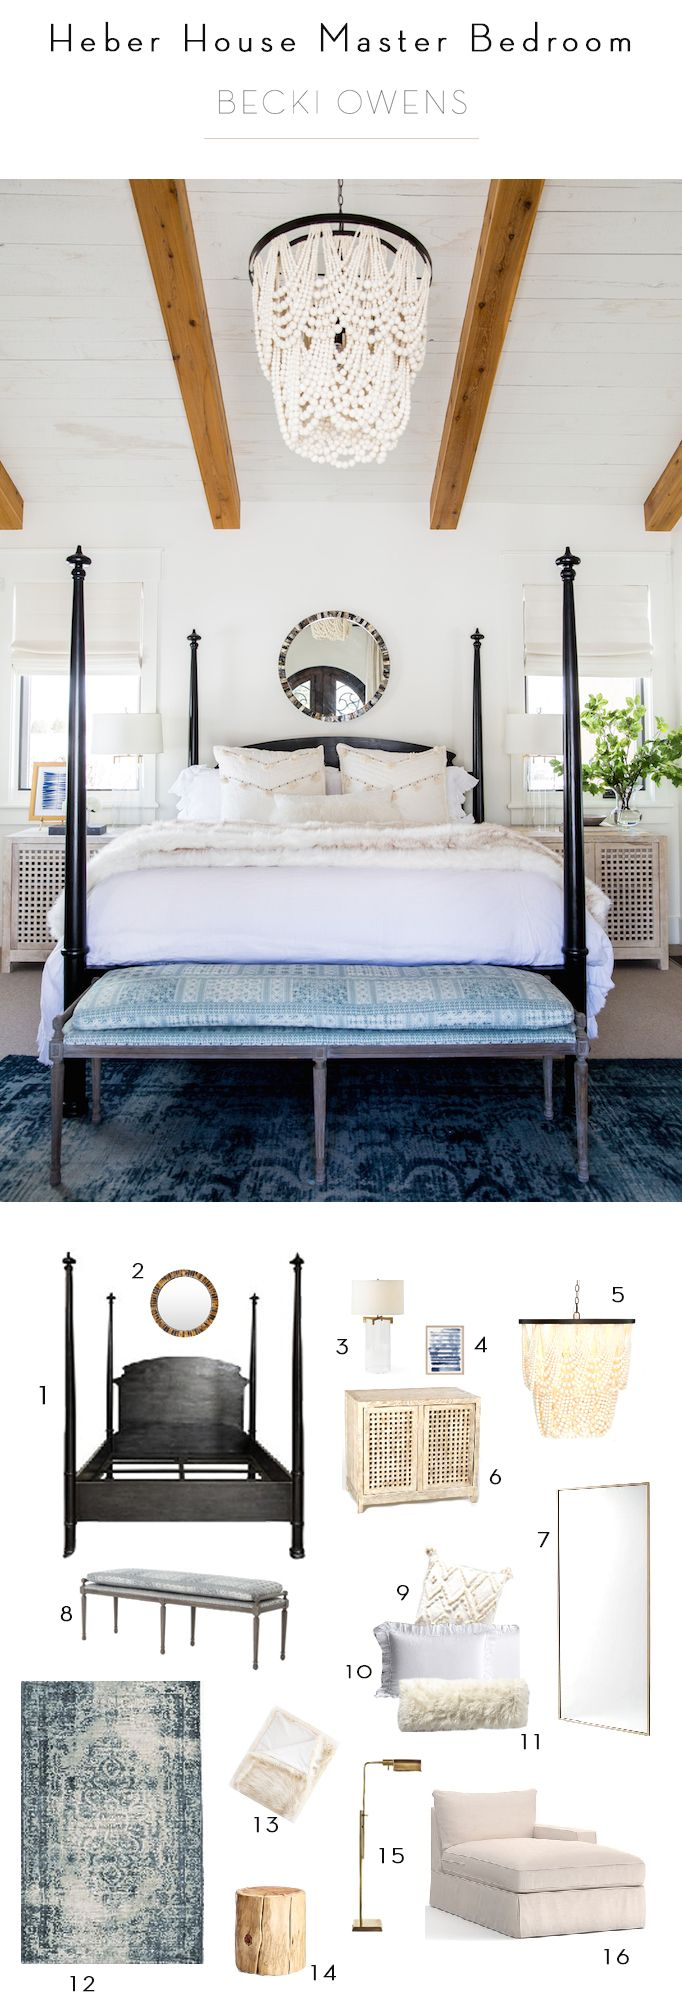 BECKI OWENS- Heber House Project Master Bedroom - a fresh space with warm rustic accents - BM Swiss Coffee, exposed beams, shiplap, marble fireplace, wood bead chandelier, overdyed blue rug, Noir four poster bed